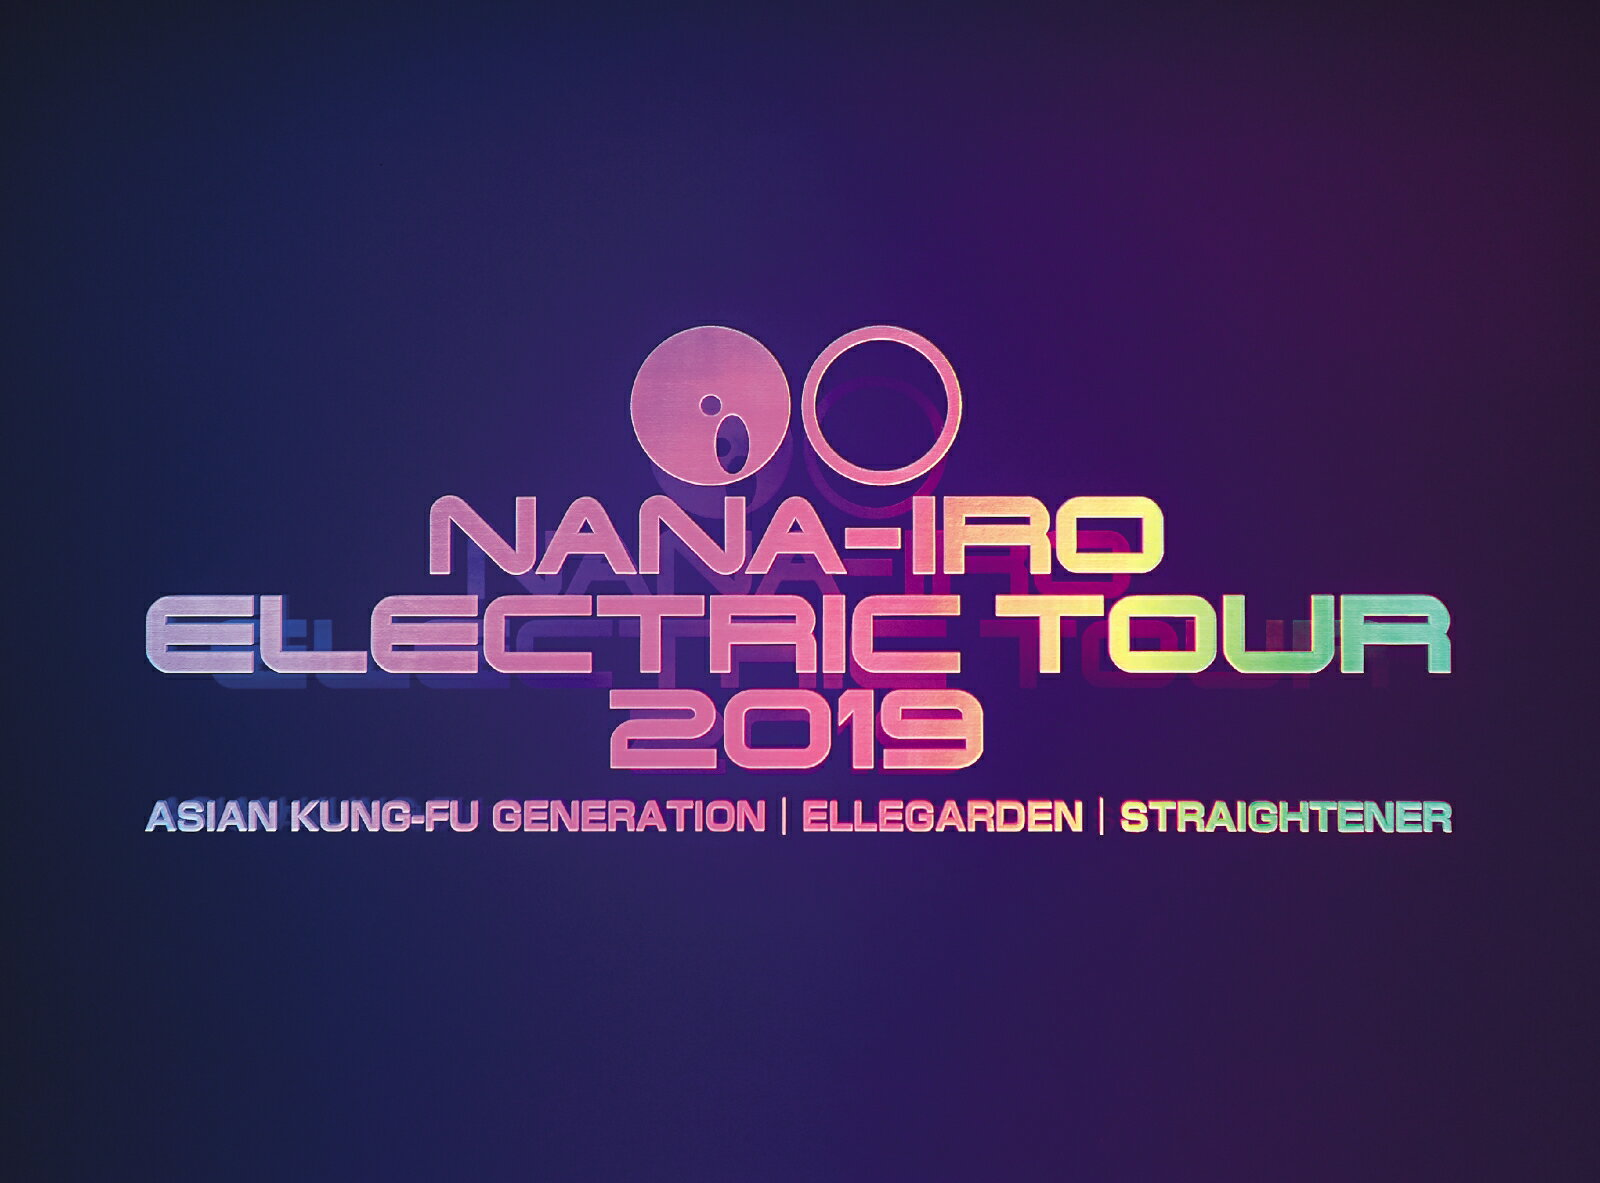 NANA-IRO ELECTRIC TOUR 2019 (初回生産限定盤 Blu-ray + PHOTO BOOOK)【Blu-ray】